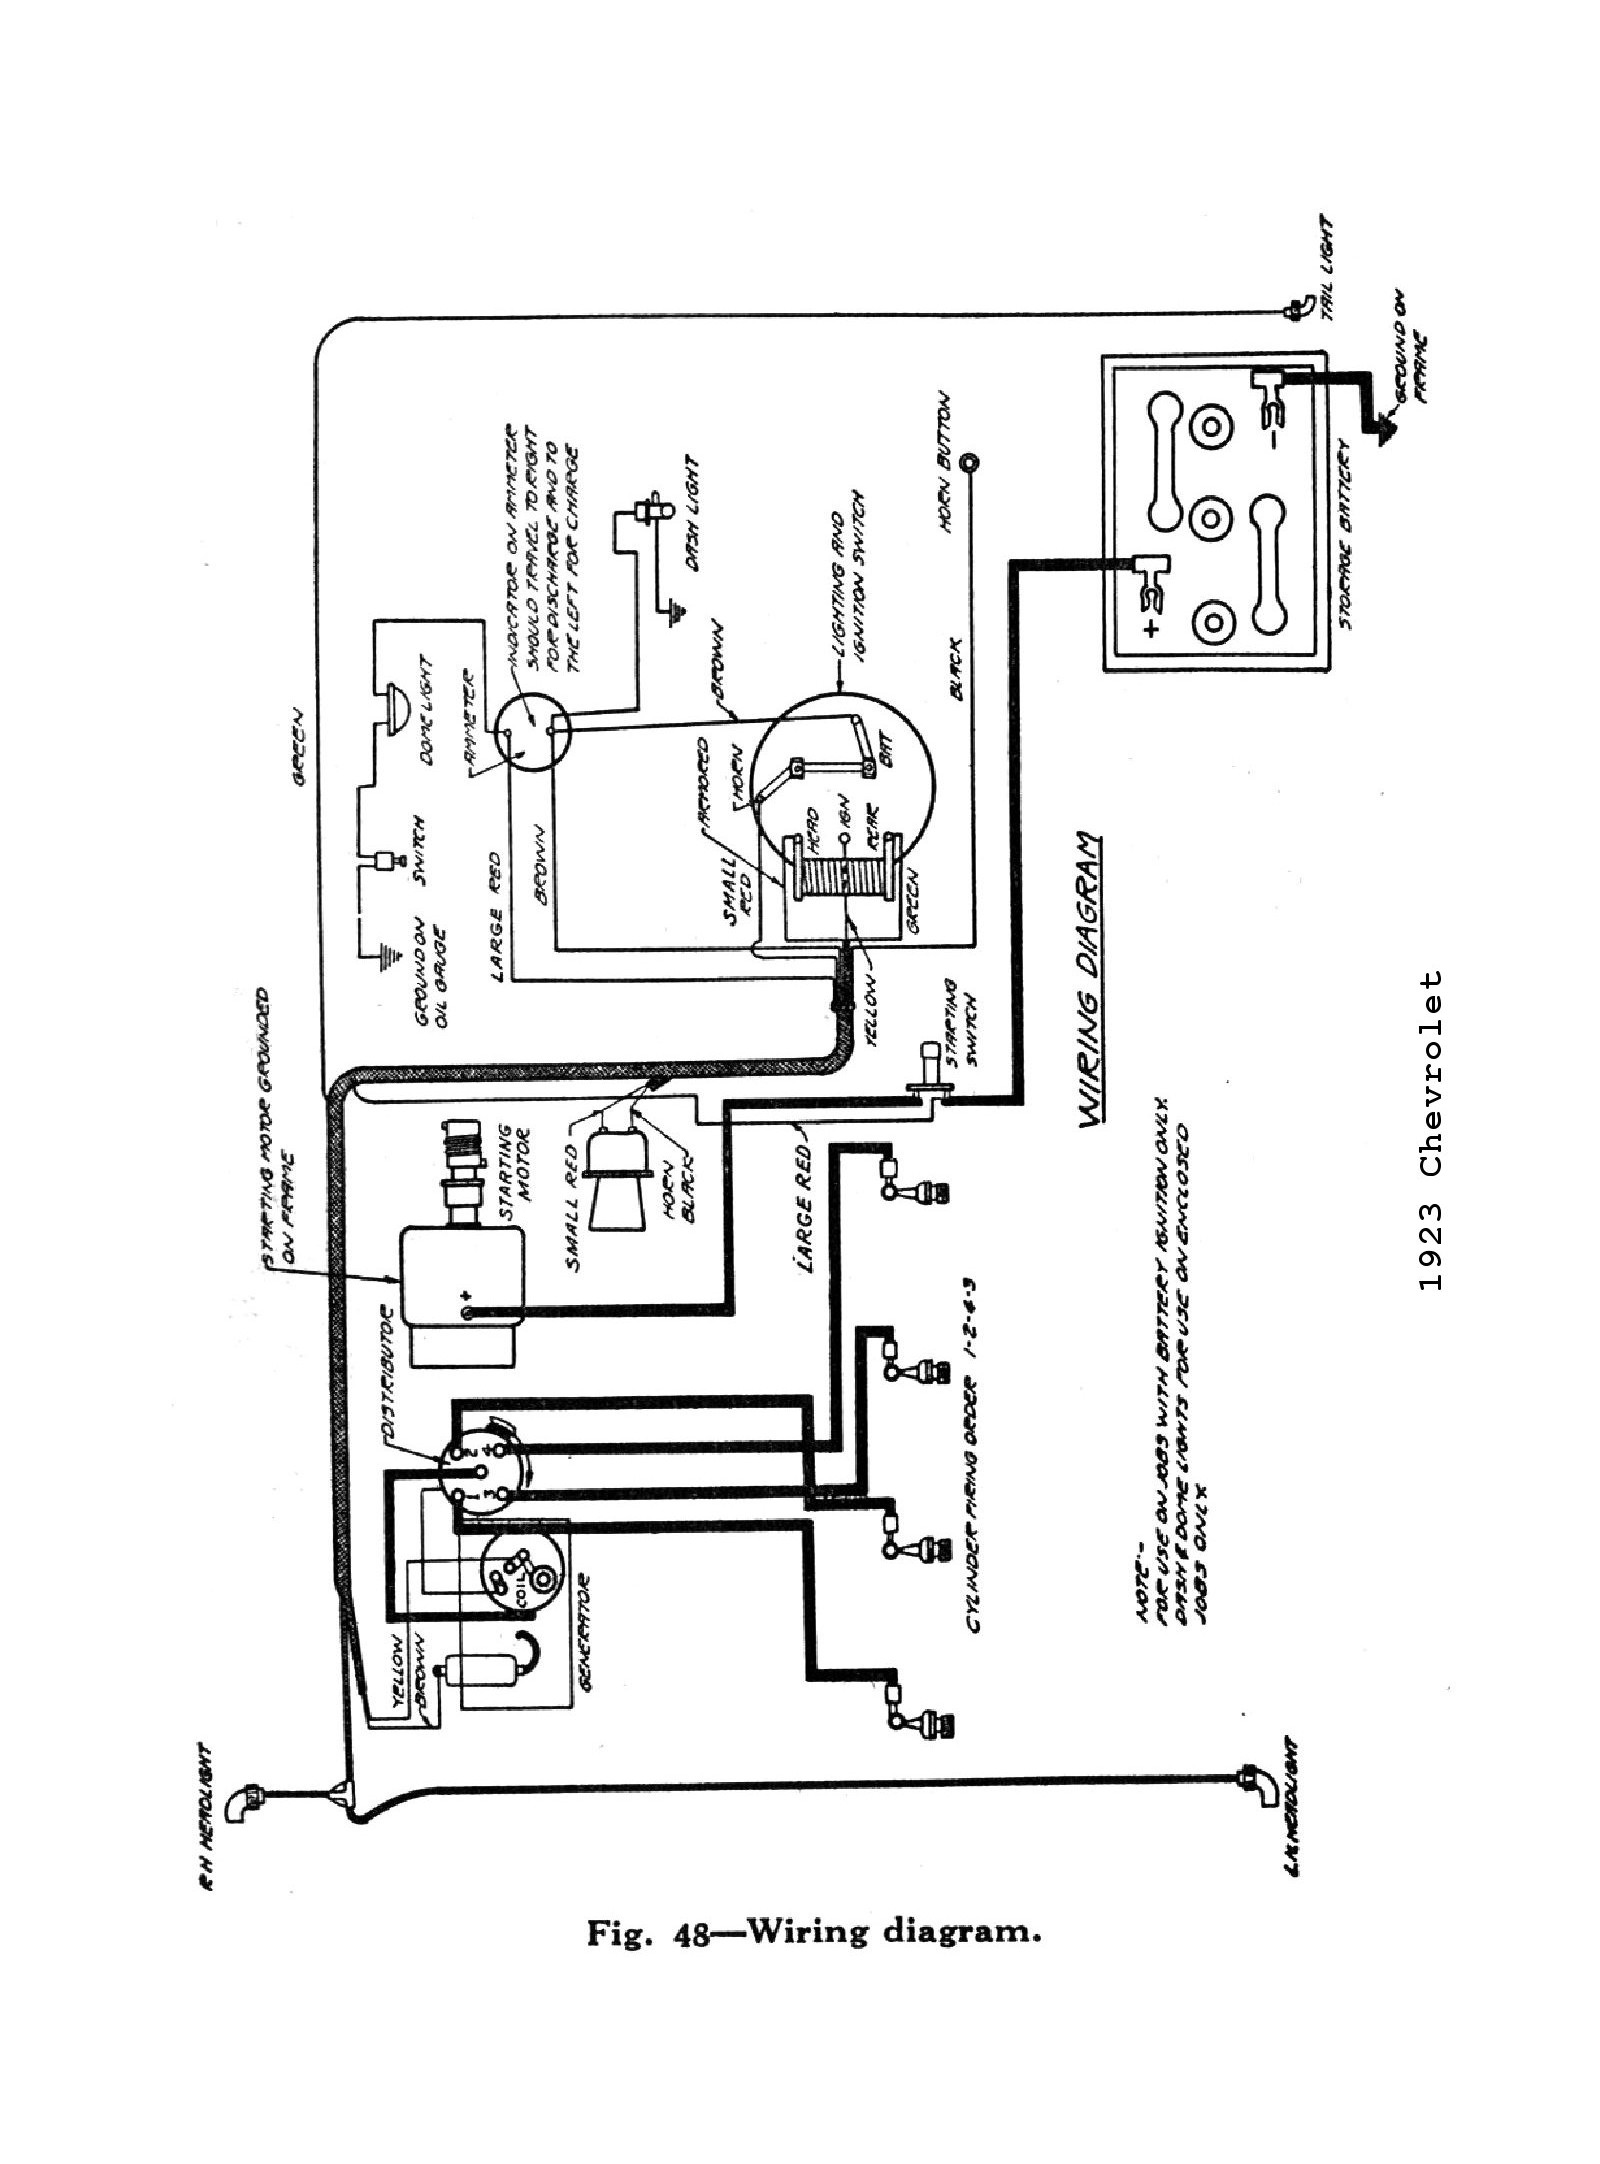 1930 Chevrolet Wiring Diagram Schematic - Wiring Data on ford instrument cluster wiring diagram, chevy truck instrument cluster assembly, 2003 chevy silverado instrument cluster wiring diagram, 2004 chevy silverado instrument cluster wiring diagram, chevy truck body diagram, audi instrument cluster wiring diagram,